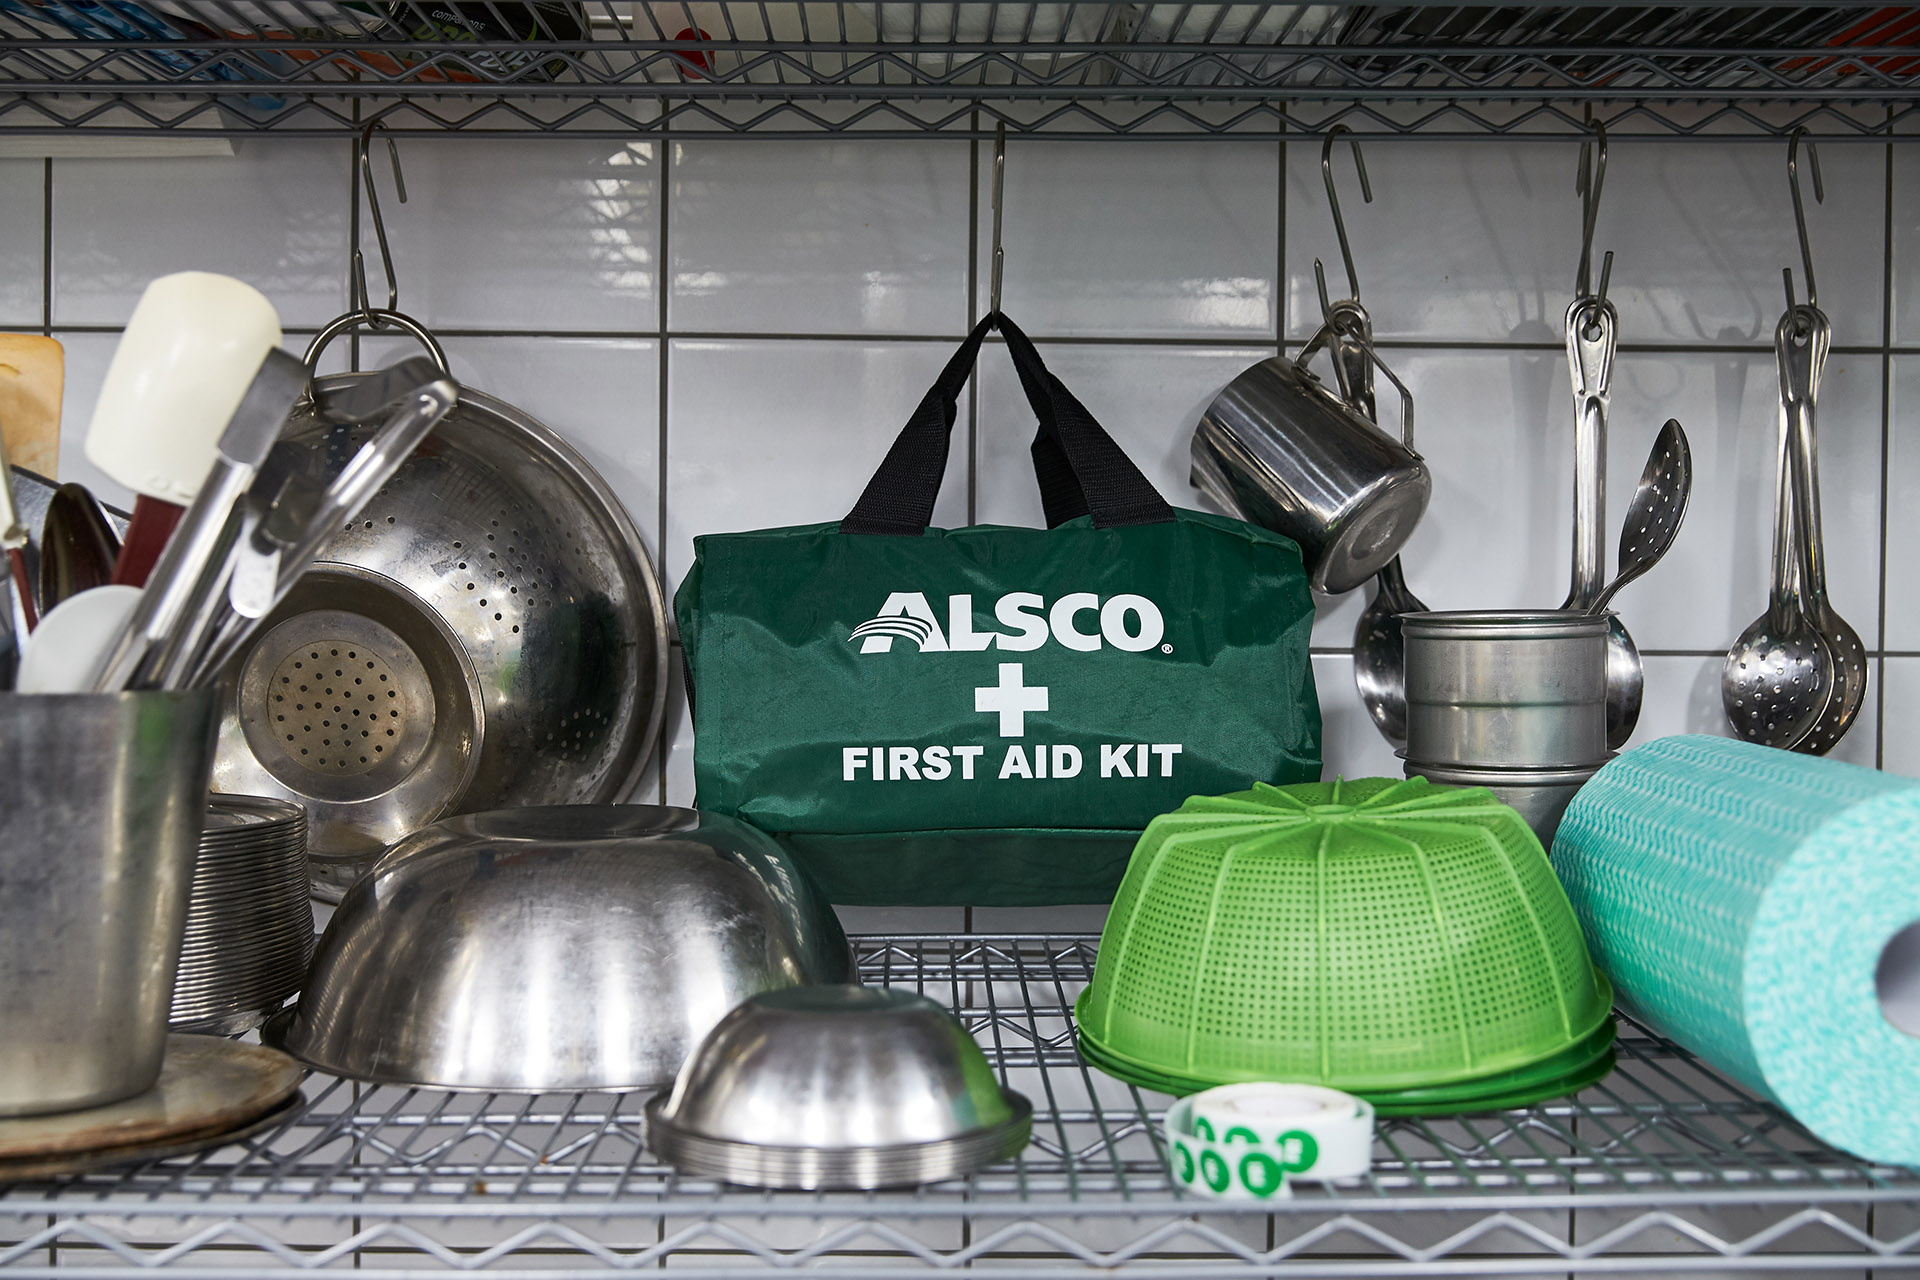 Alsco first aid kit in the kitchen